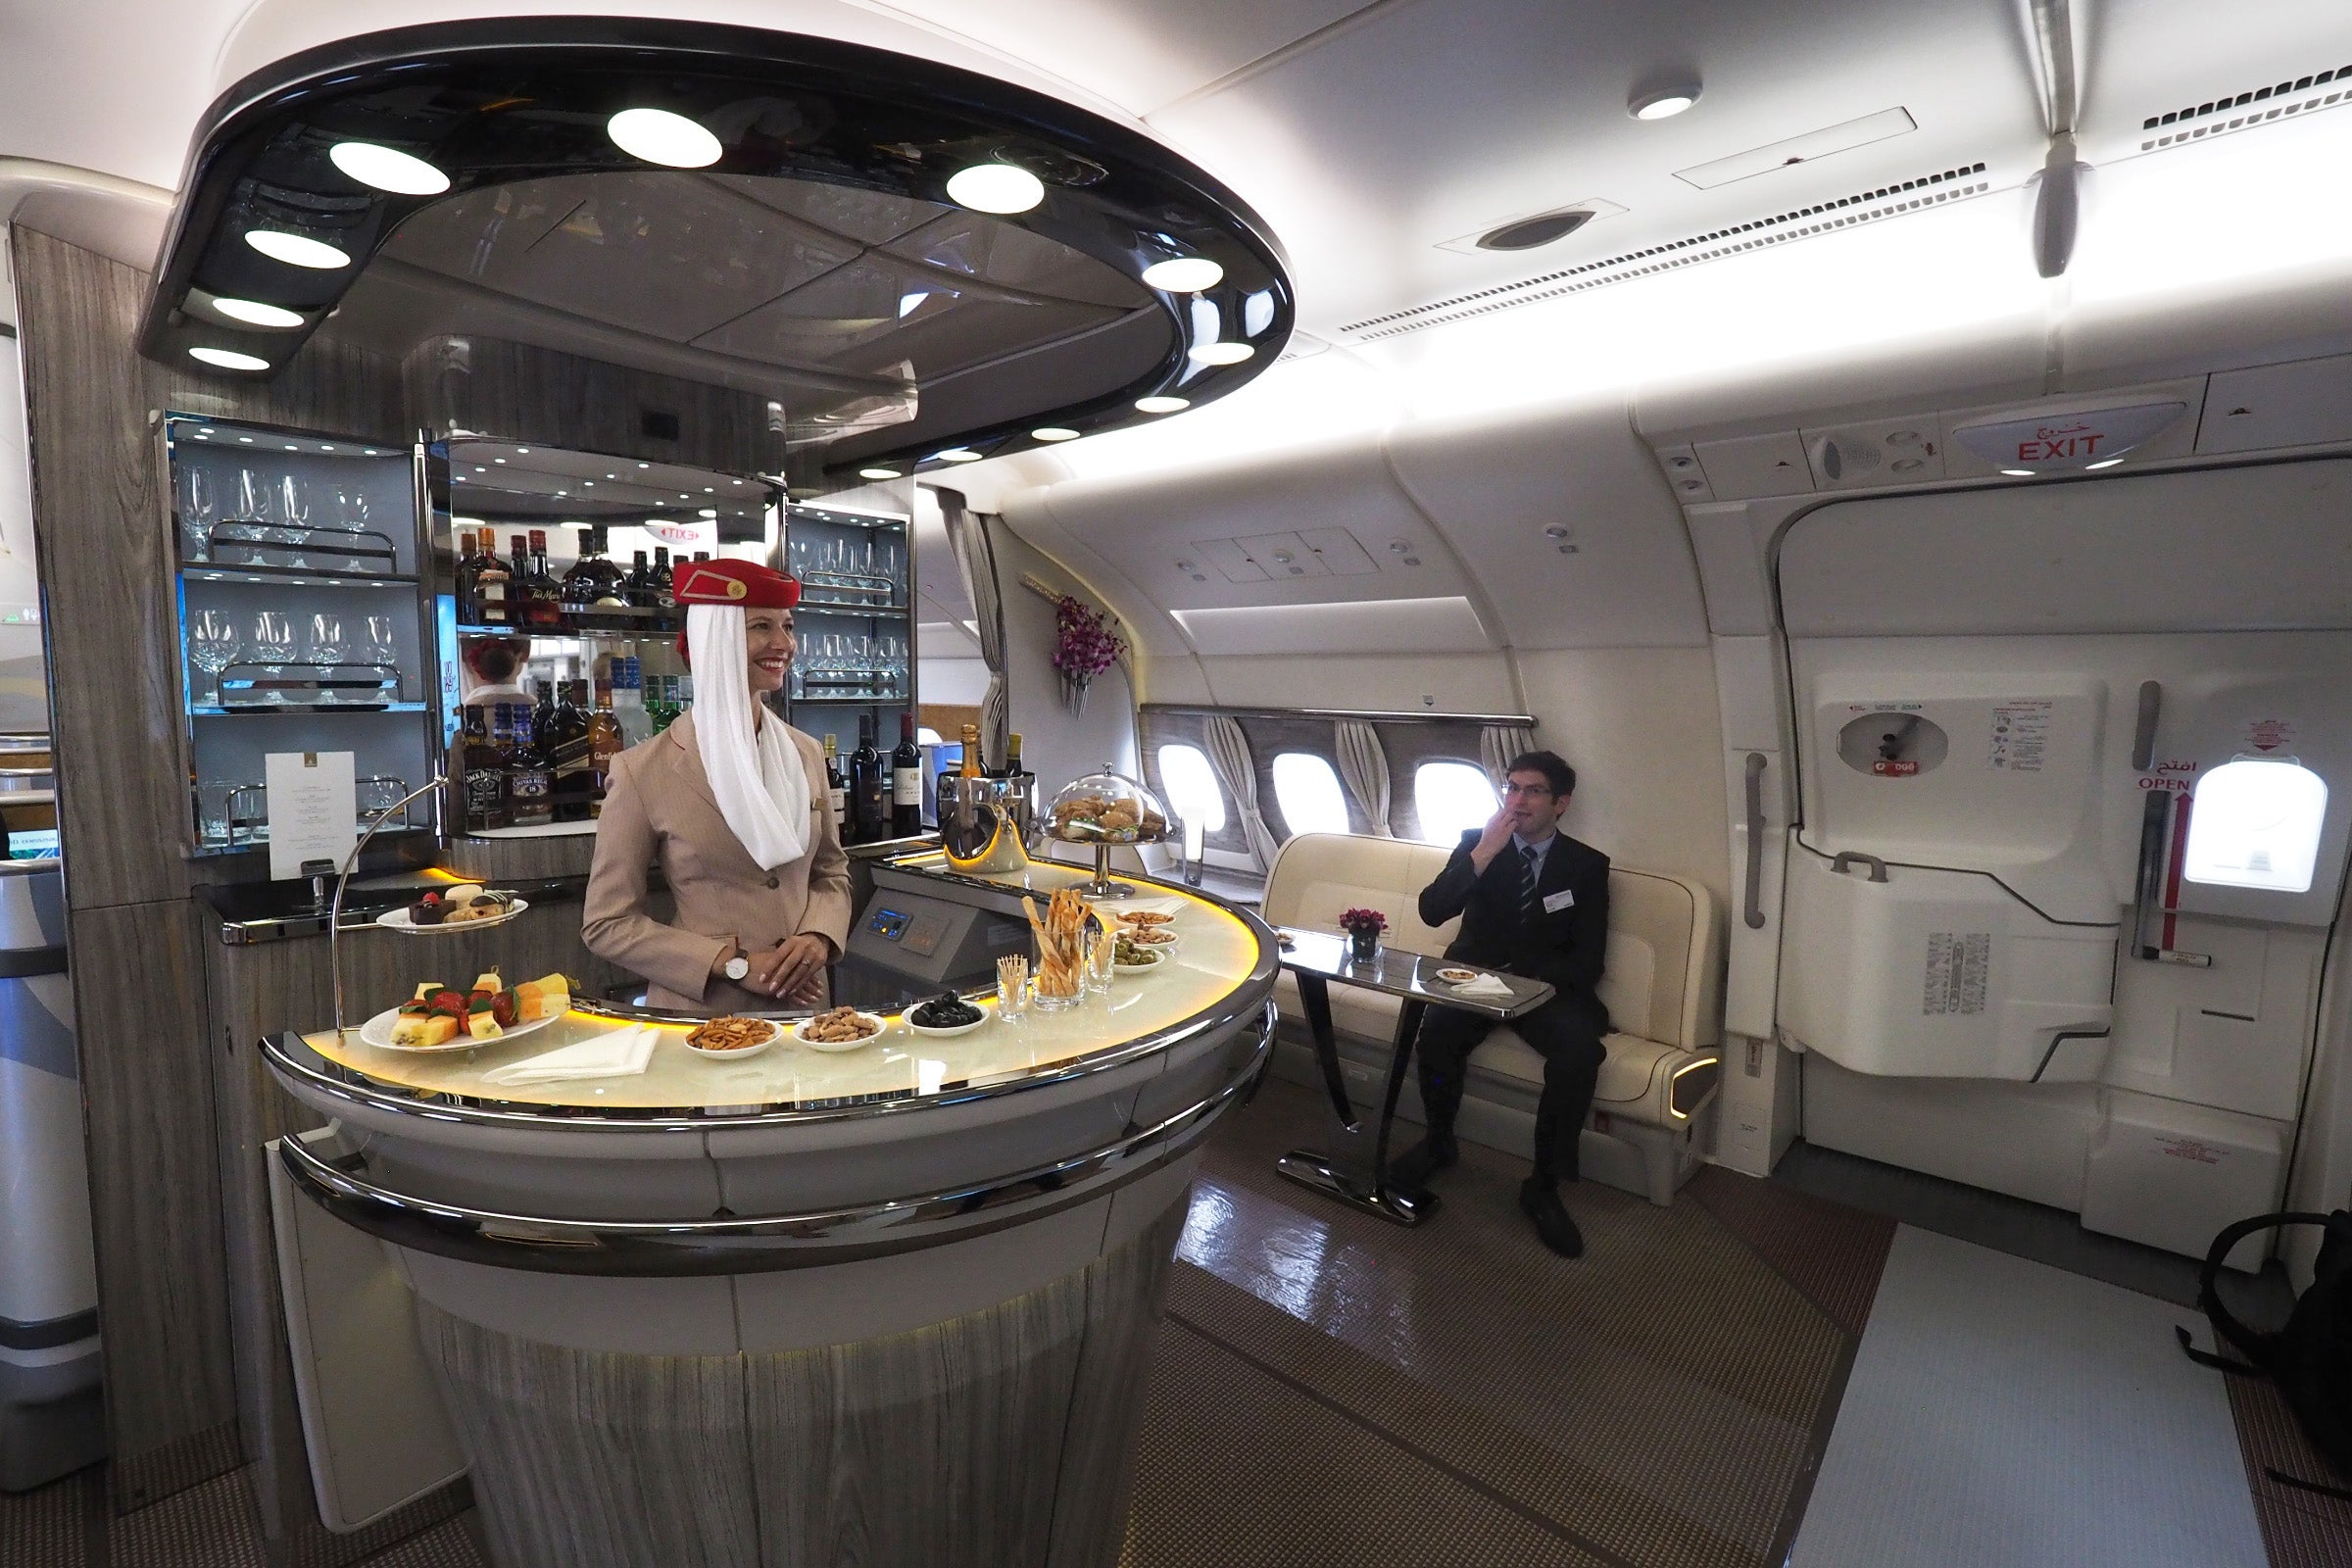 Check Out Emirates' Fancy New Airbus A380 In-Flight Bar - The Points Guy